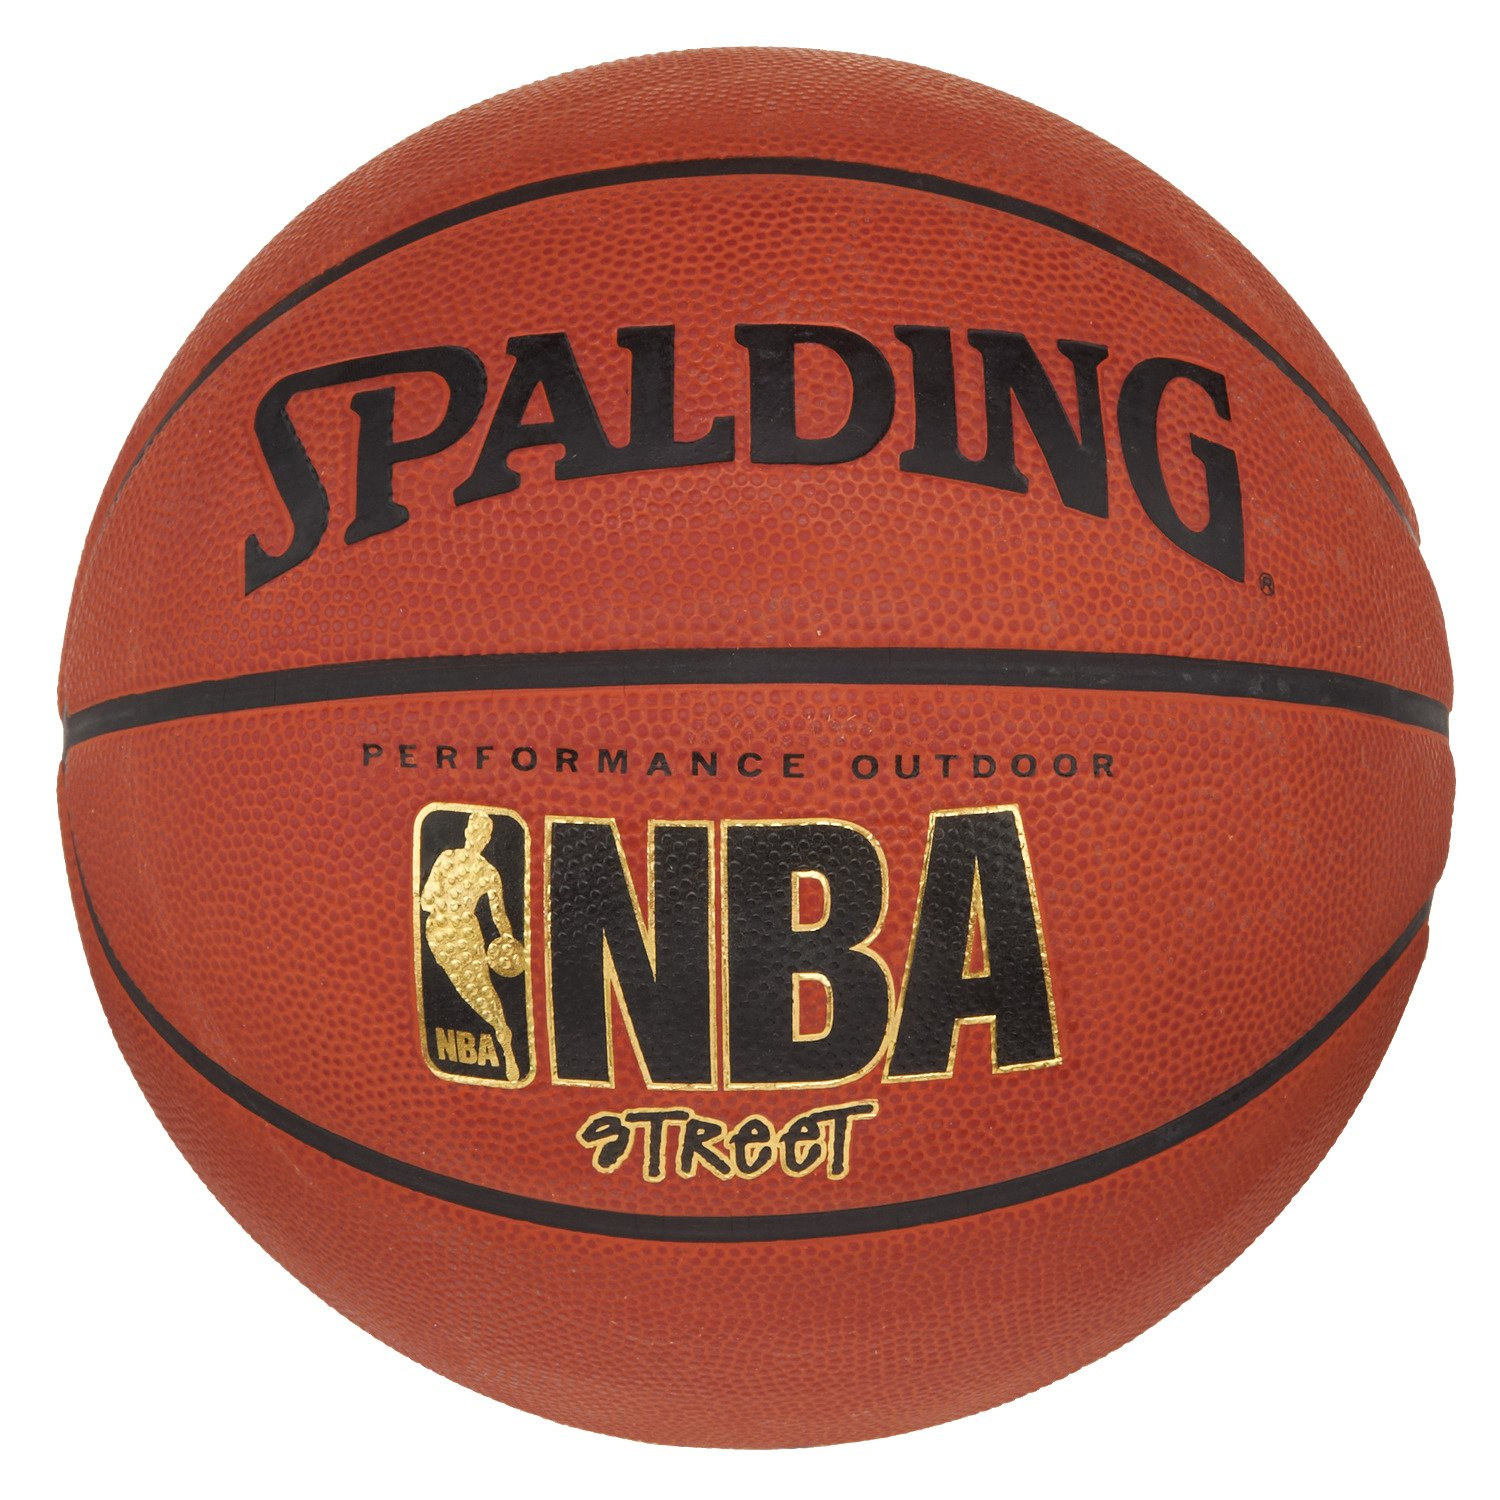 Basketballs spalding wilson basketballs academy - Spalding basketball images ...